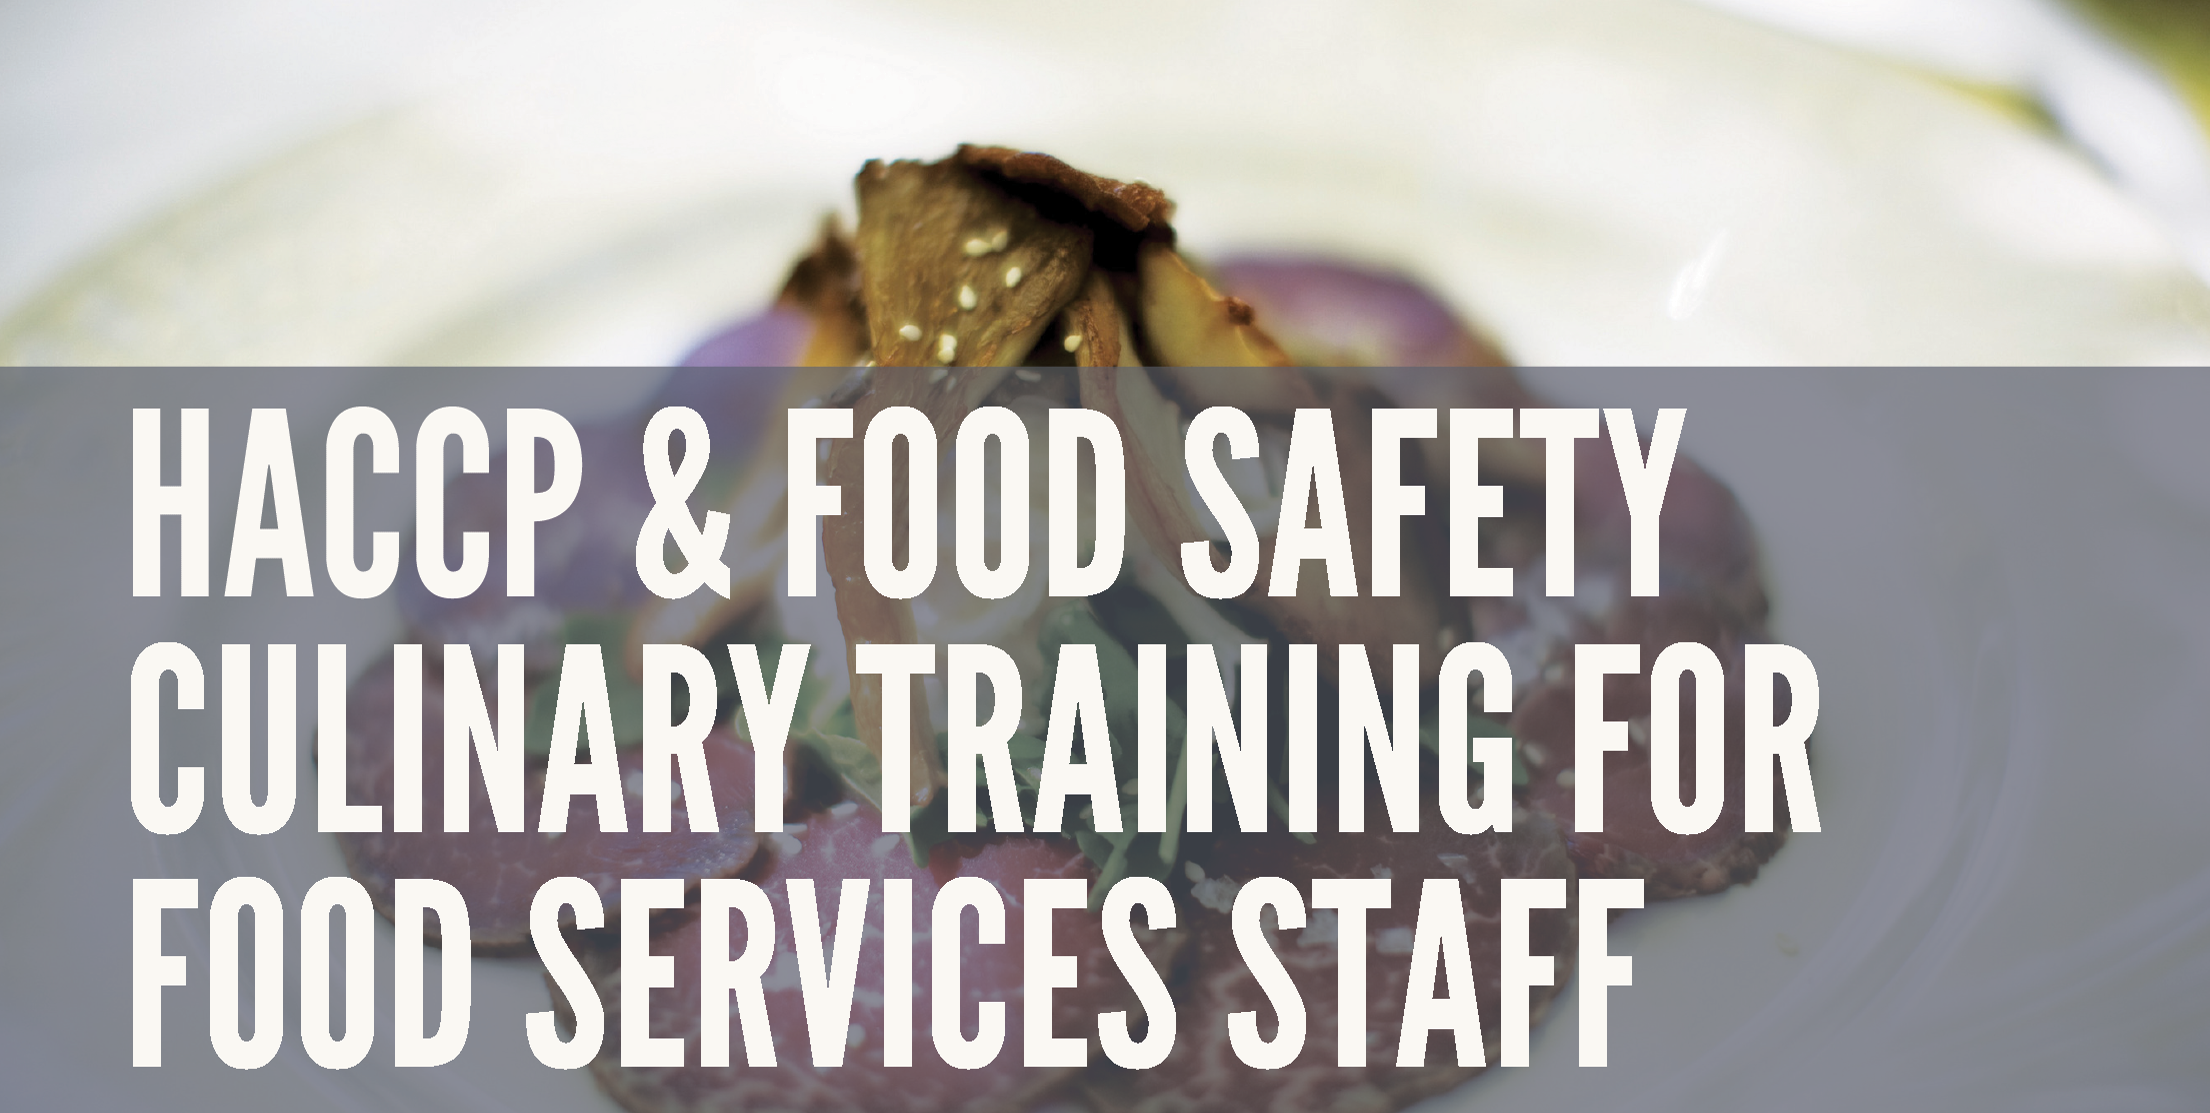 HCCP & Food Safety Culinary Training for Food Services Staff - This training will provide students with the knowledge to understand the importance of Food Safety. In addition, The Coles Group will address food safety, personal hygiene, food-borne illness, cross contamination, washing, rinsing & the sanitizing of food contact surfaces, equipment, as well as manual dish-washing with a 3 & 2 compartment sink. Course Duration: 8 weeks